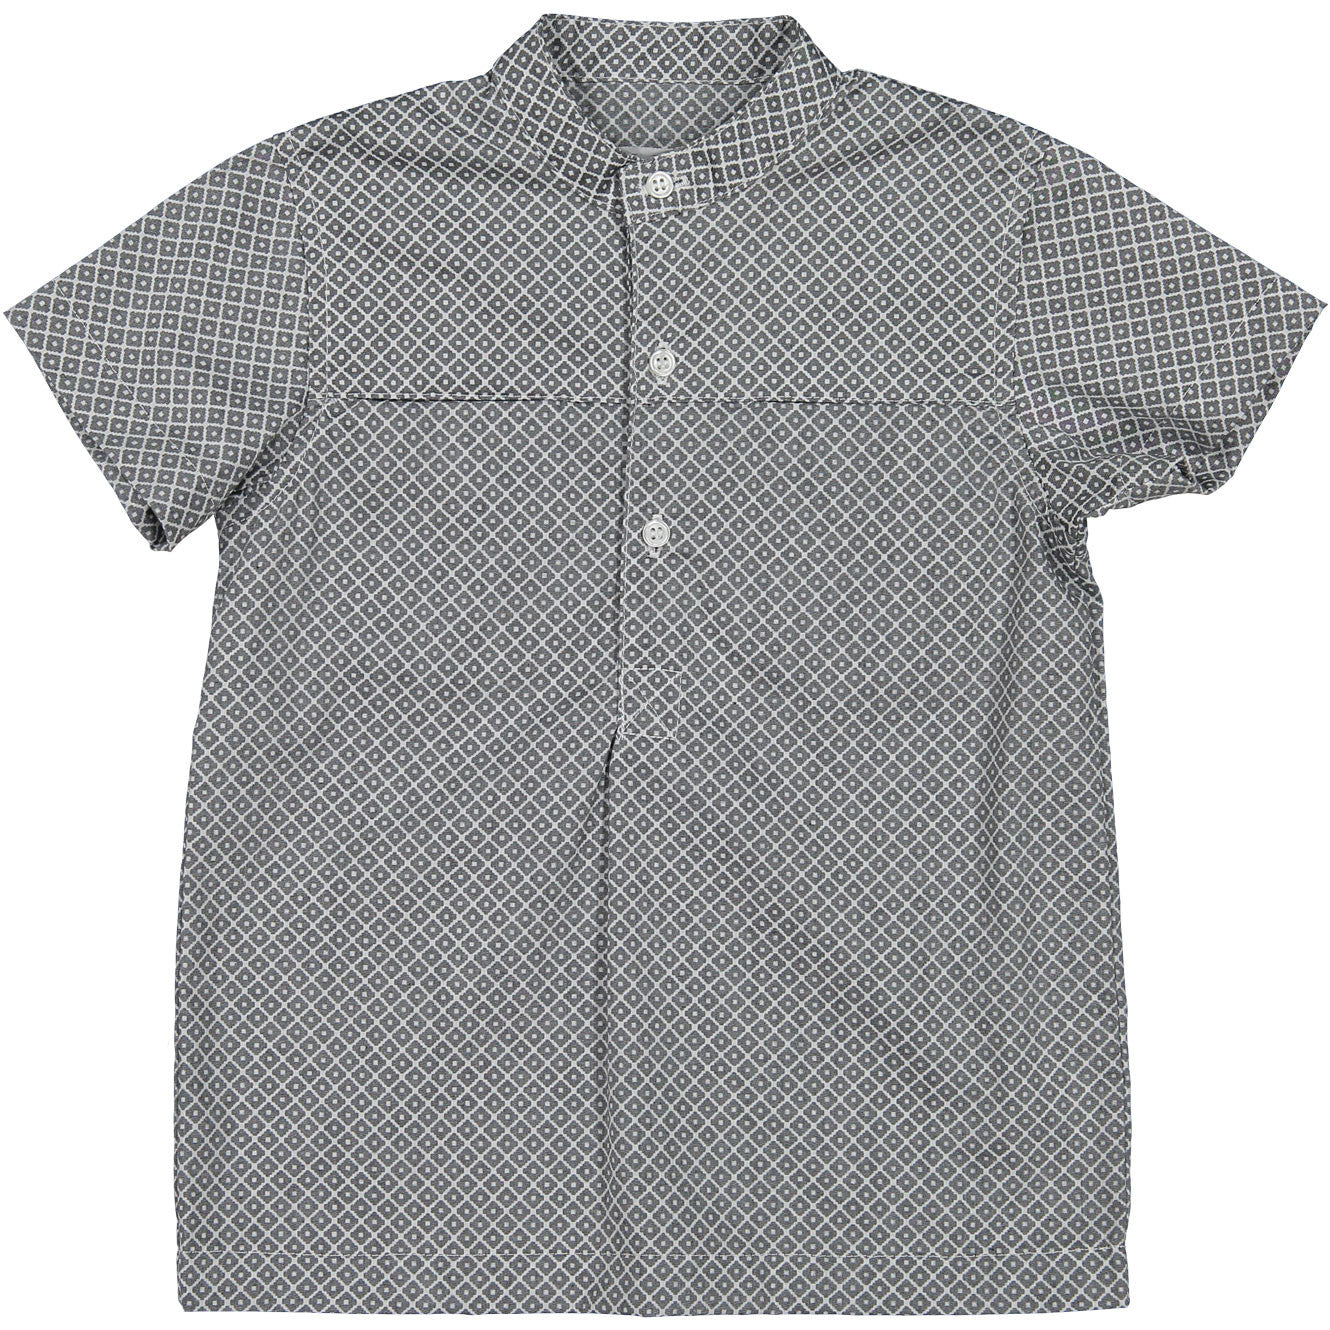 Liho Black Diamond Weave Shirt - Ladida